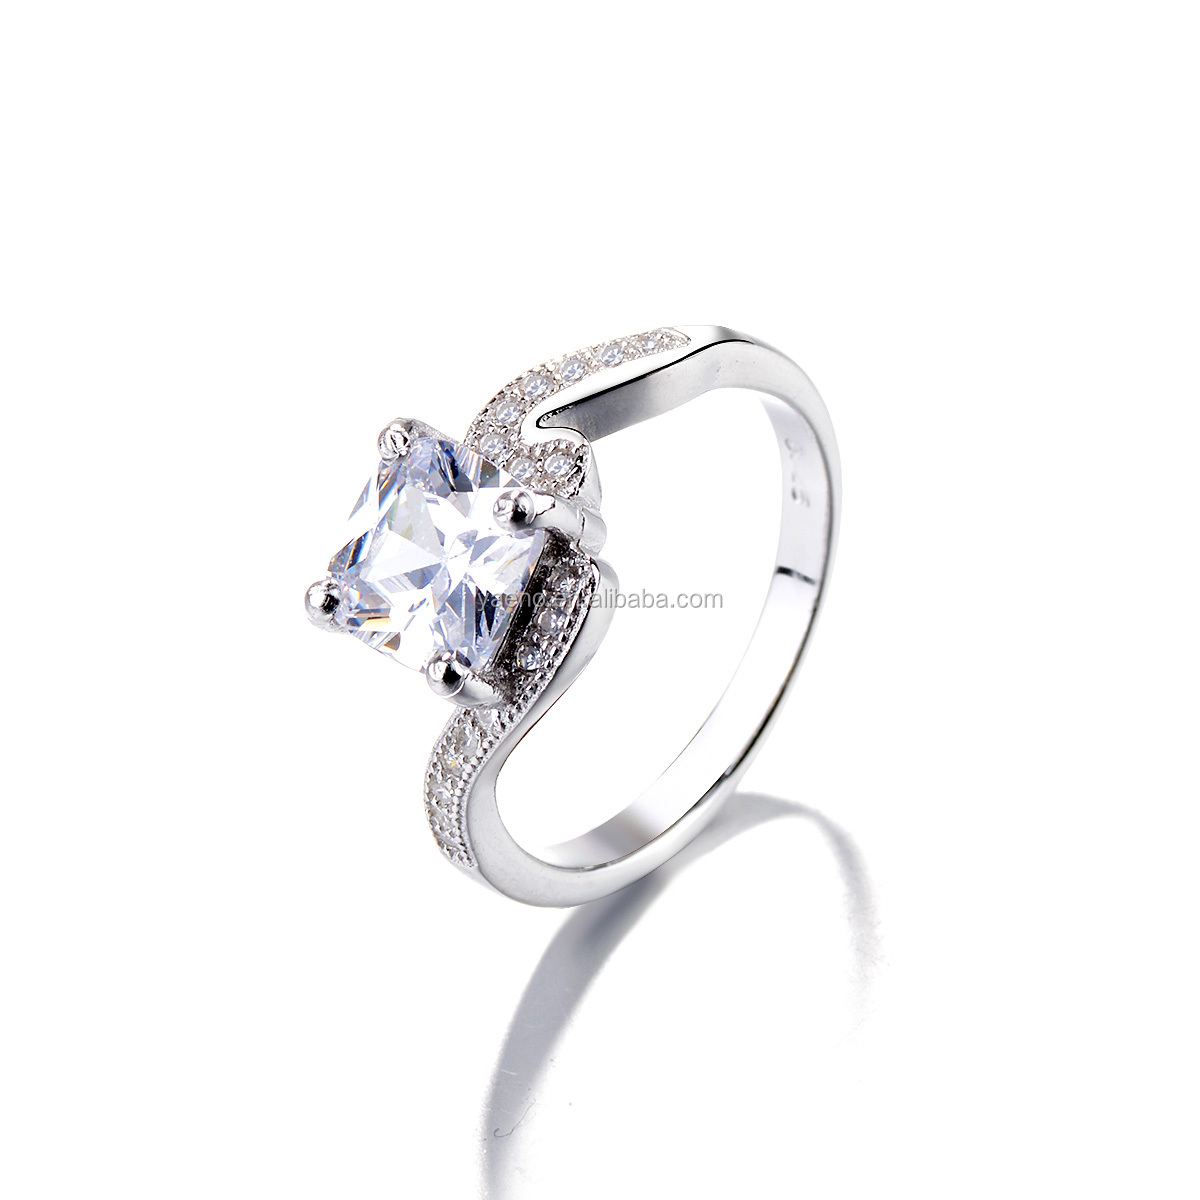 Fashionable 925 Sterling Silver Square Stone Ring